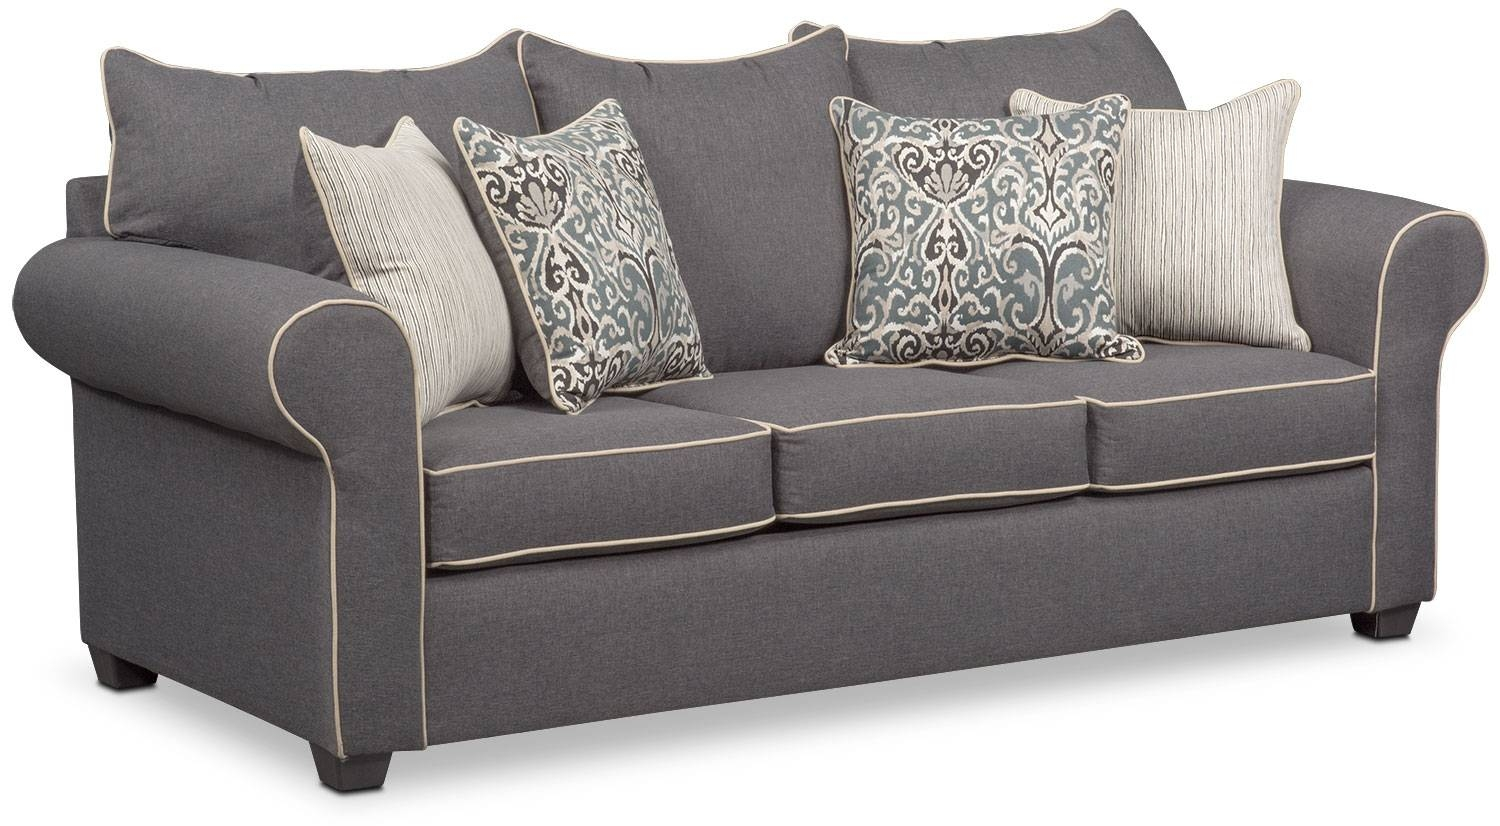 Carla Sofa And Accent Chair Set - Gray | Value City Furniture intended for Sofa And Accent Chair Set (Image 8 of 30)